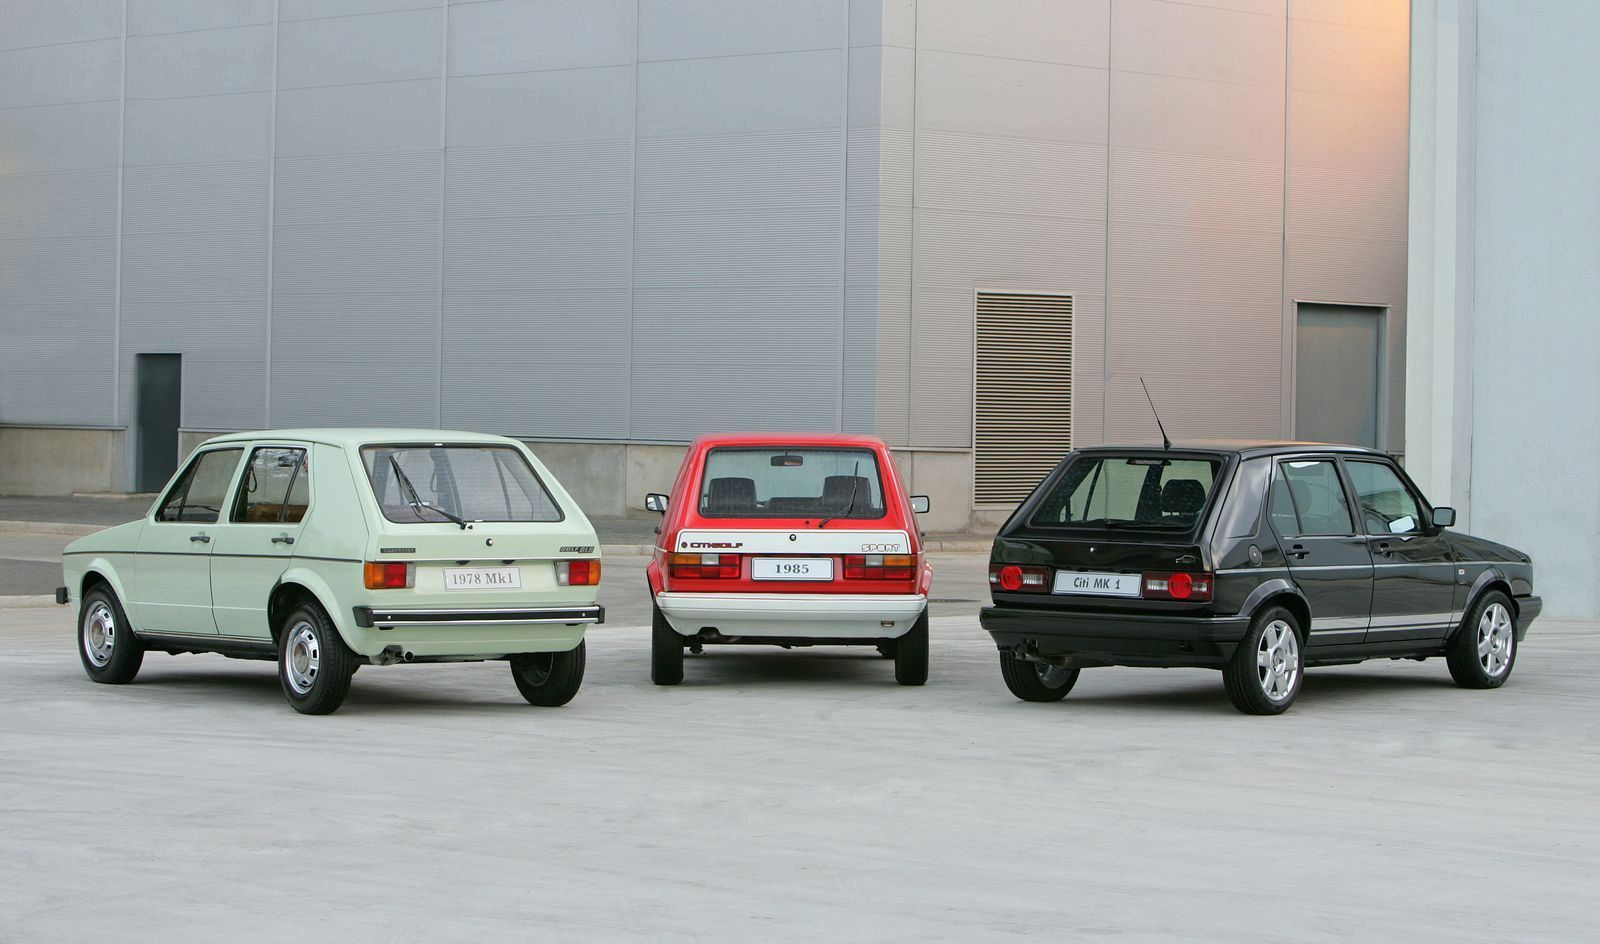 Vw Ends Golf I Production In South Africa With Citi Golf Mk1